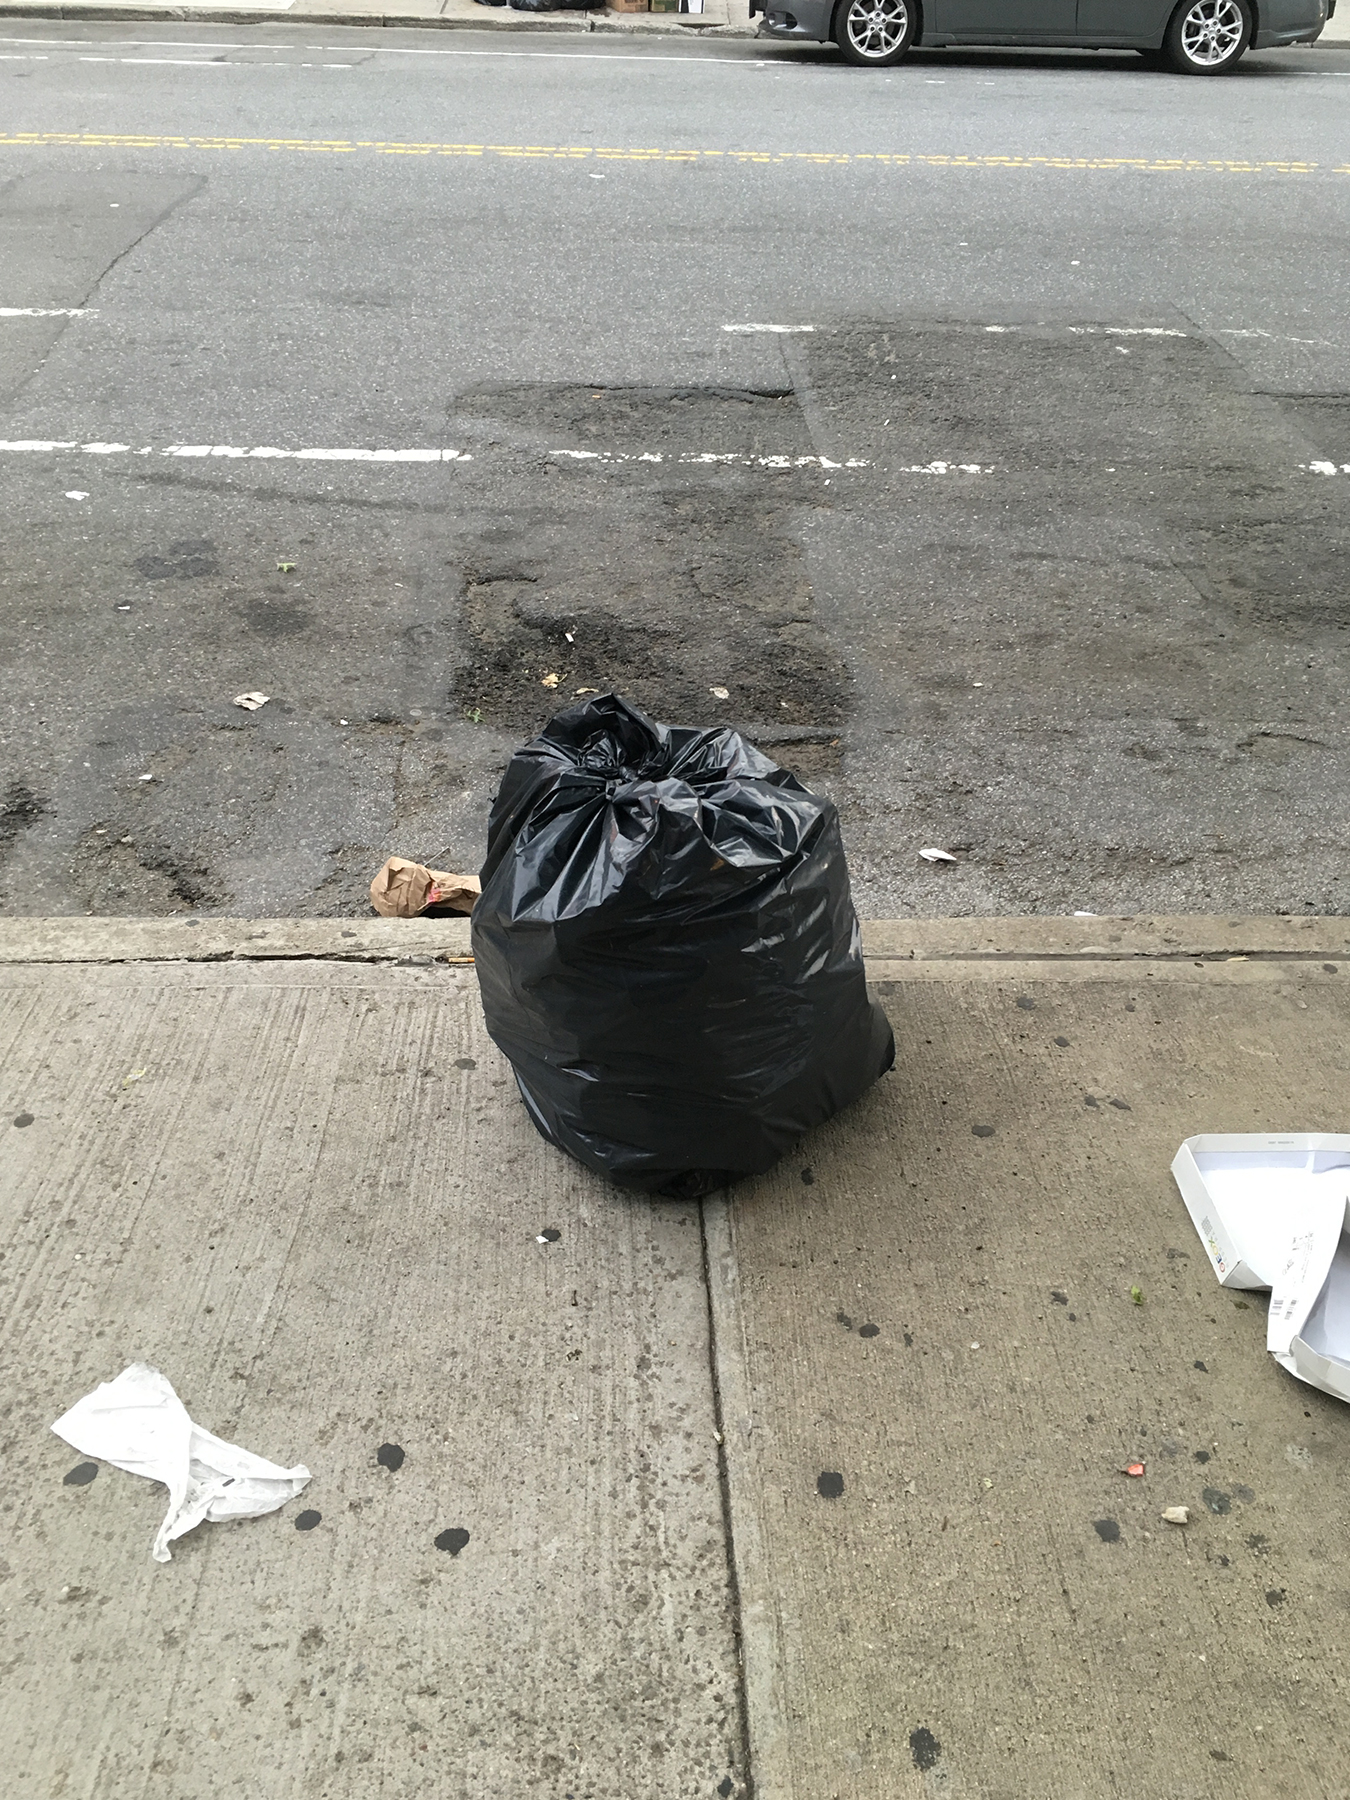 A photo of a trash bag